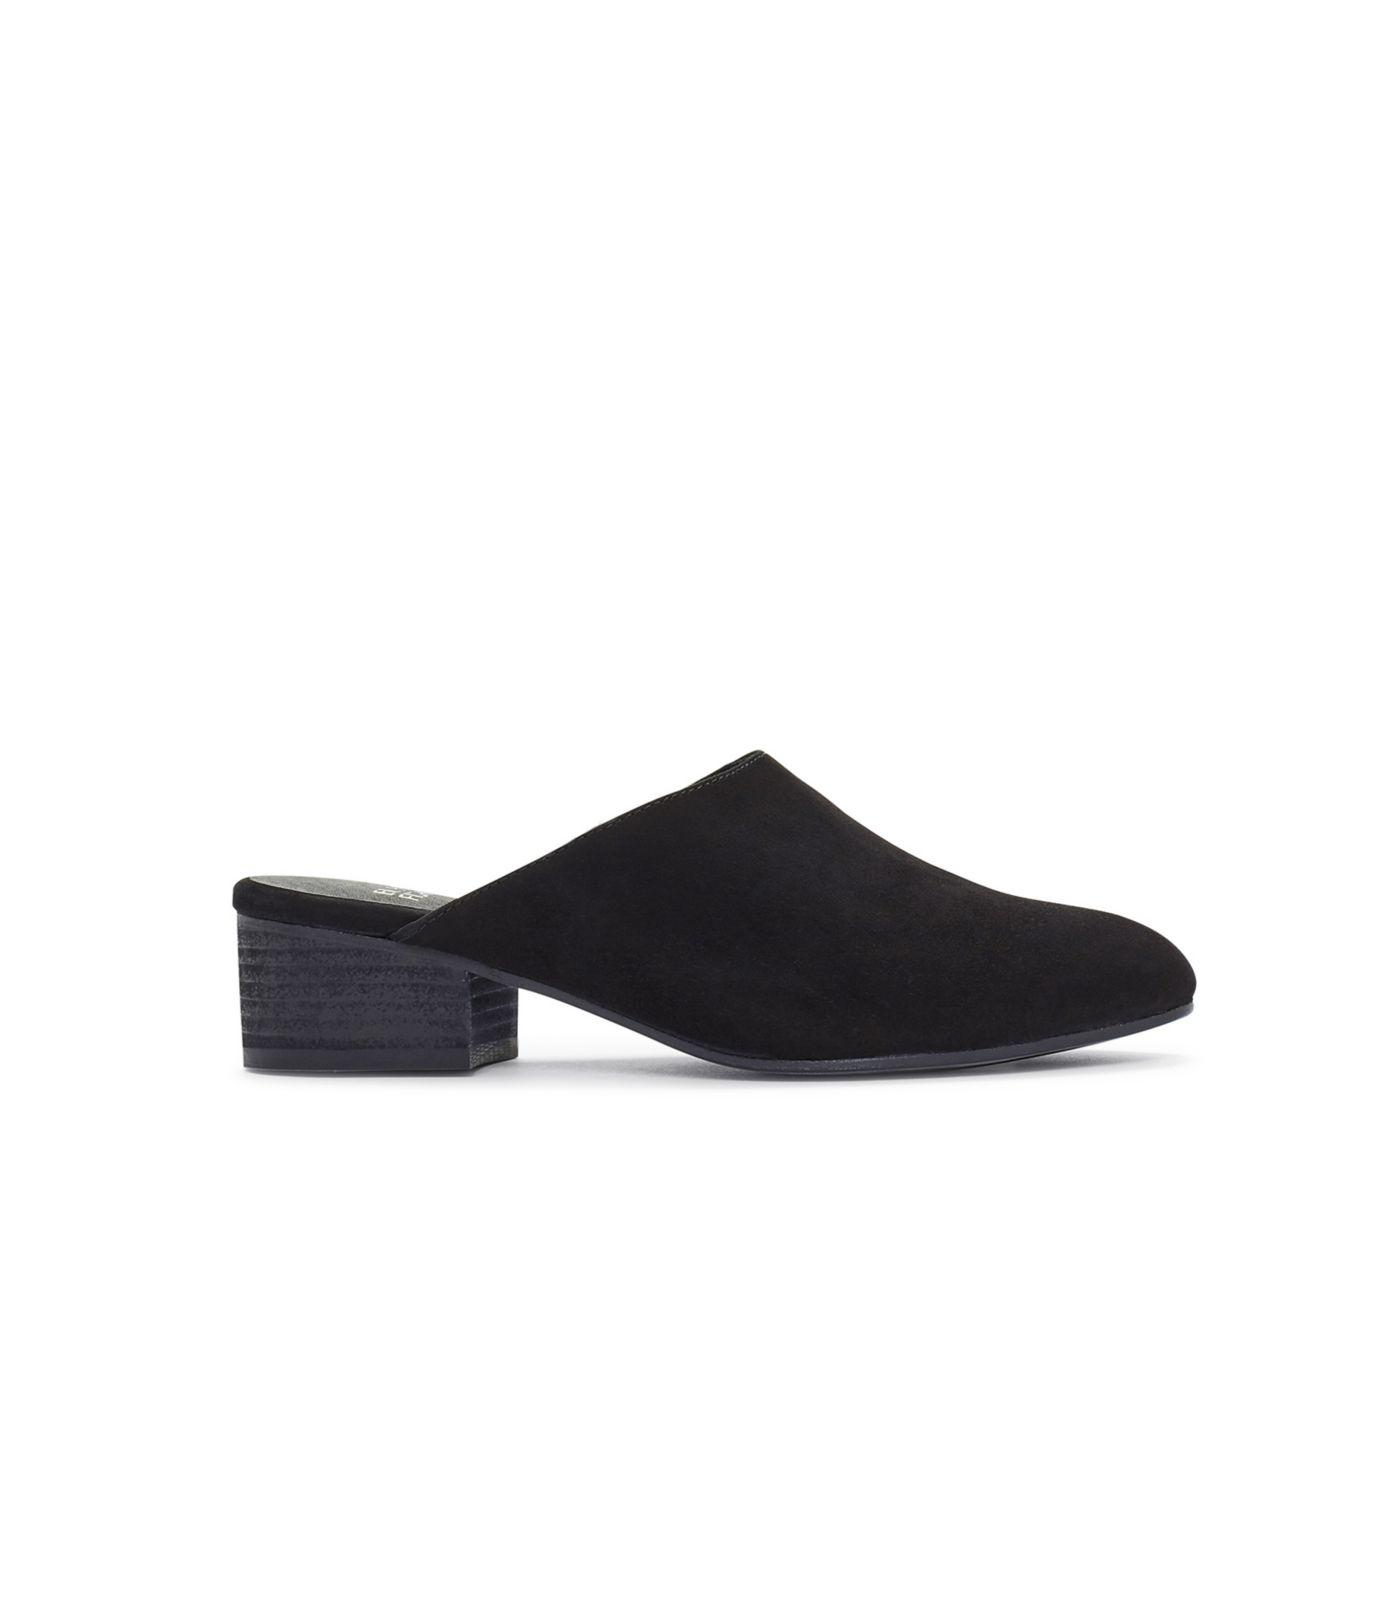 ed9f3e3db438 Lyst - Eileen Fisher Suede Sylvia Mule in Black